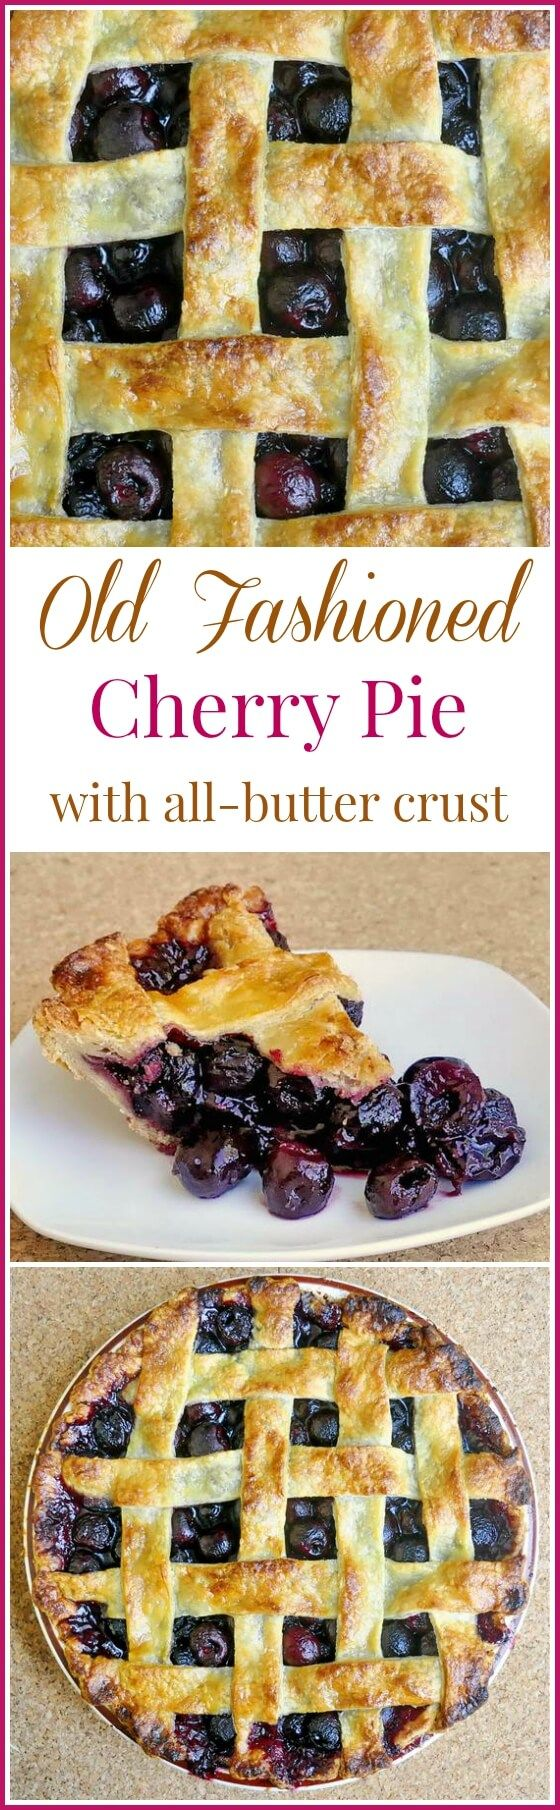 Perfect Cherry Pie - an old fashioned favorite recipe using an all butter crust and plenty of sweet cherries in the filling.